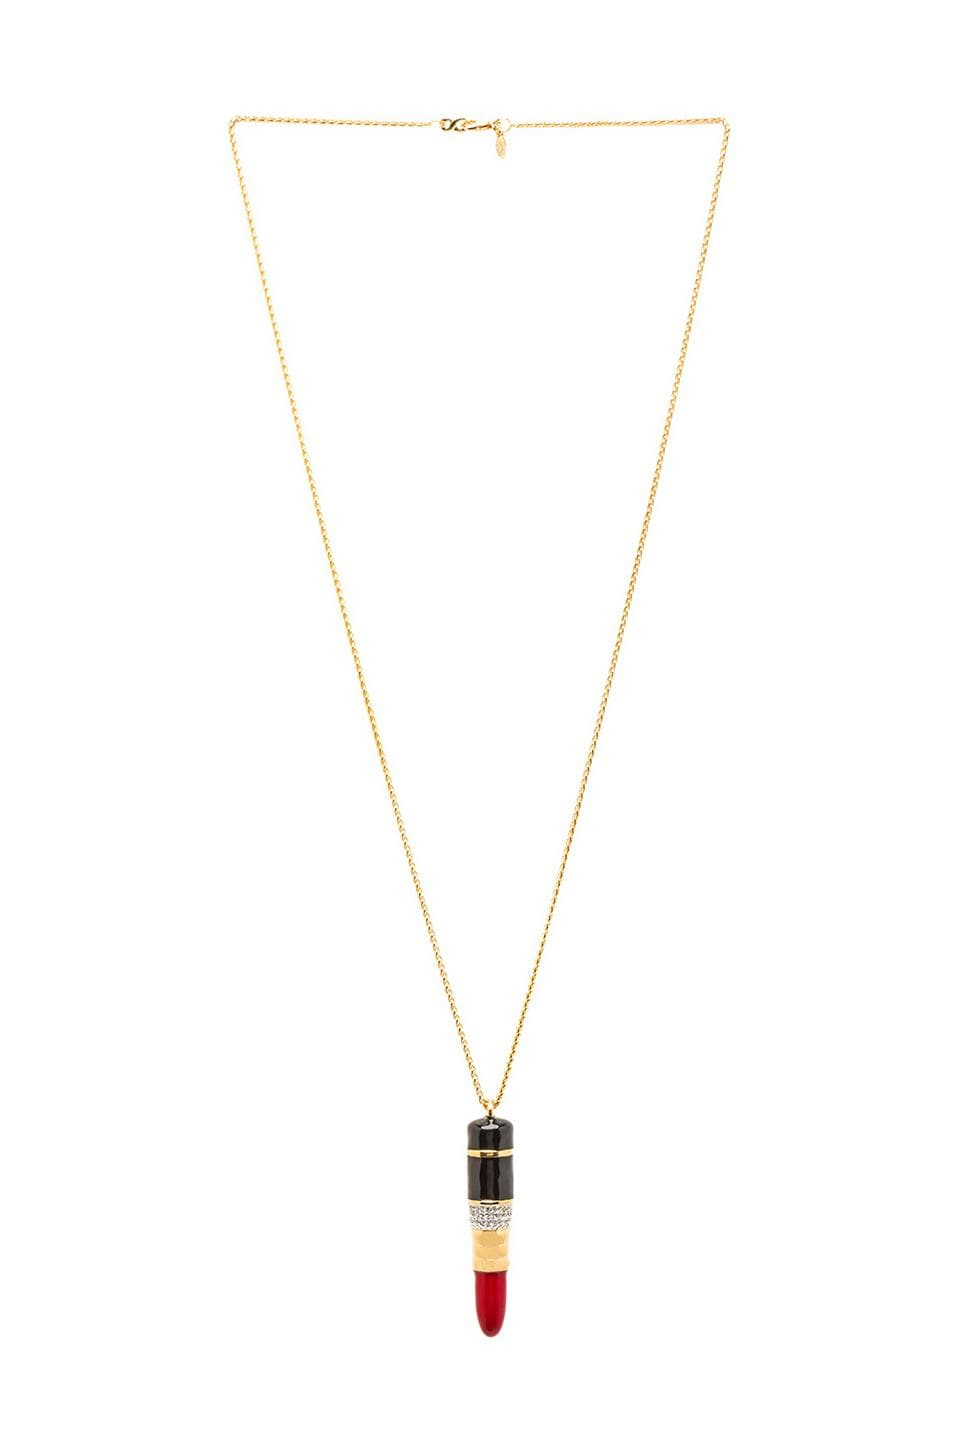 Kenneth Jay Lane Enamel Lipstick Pendant in Gold